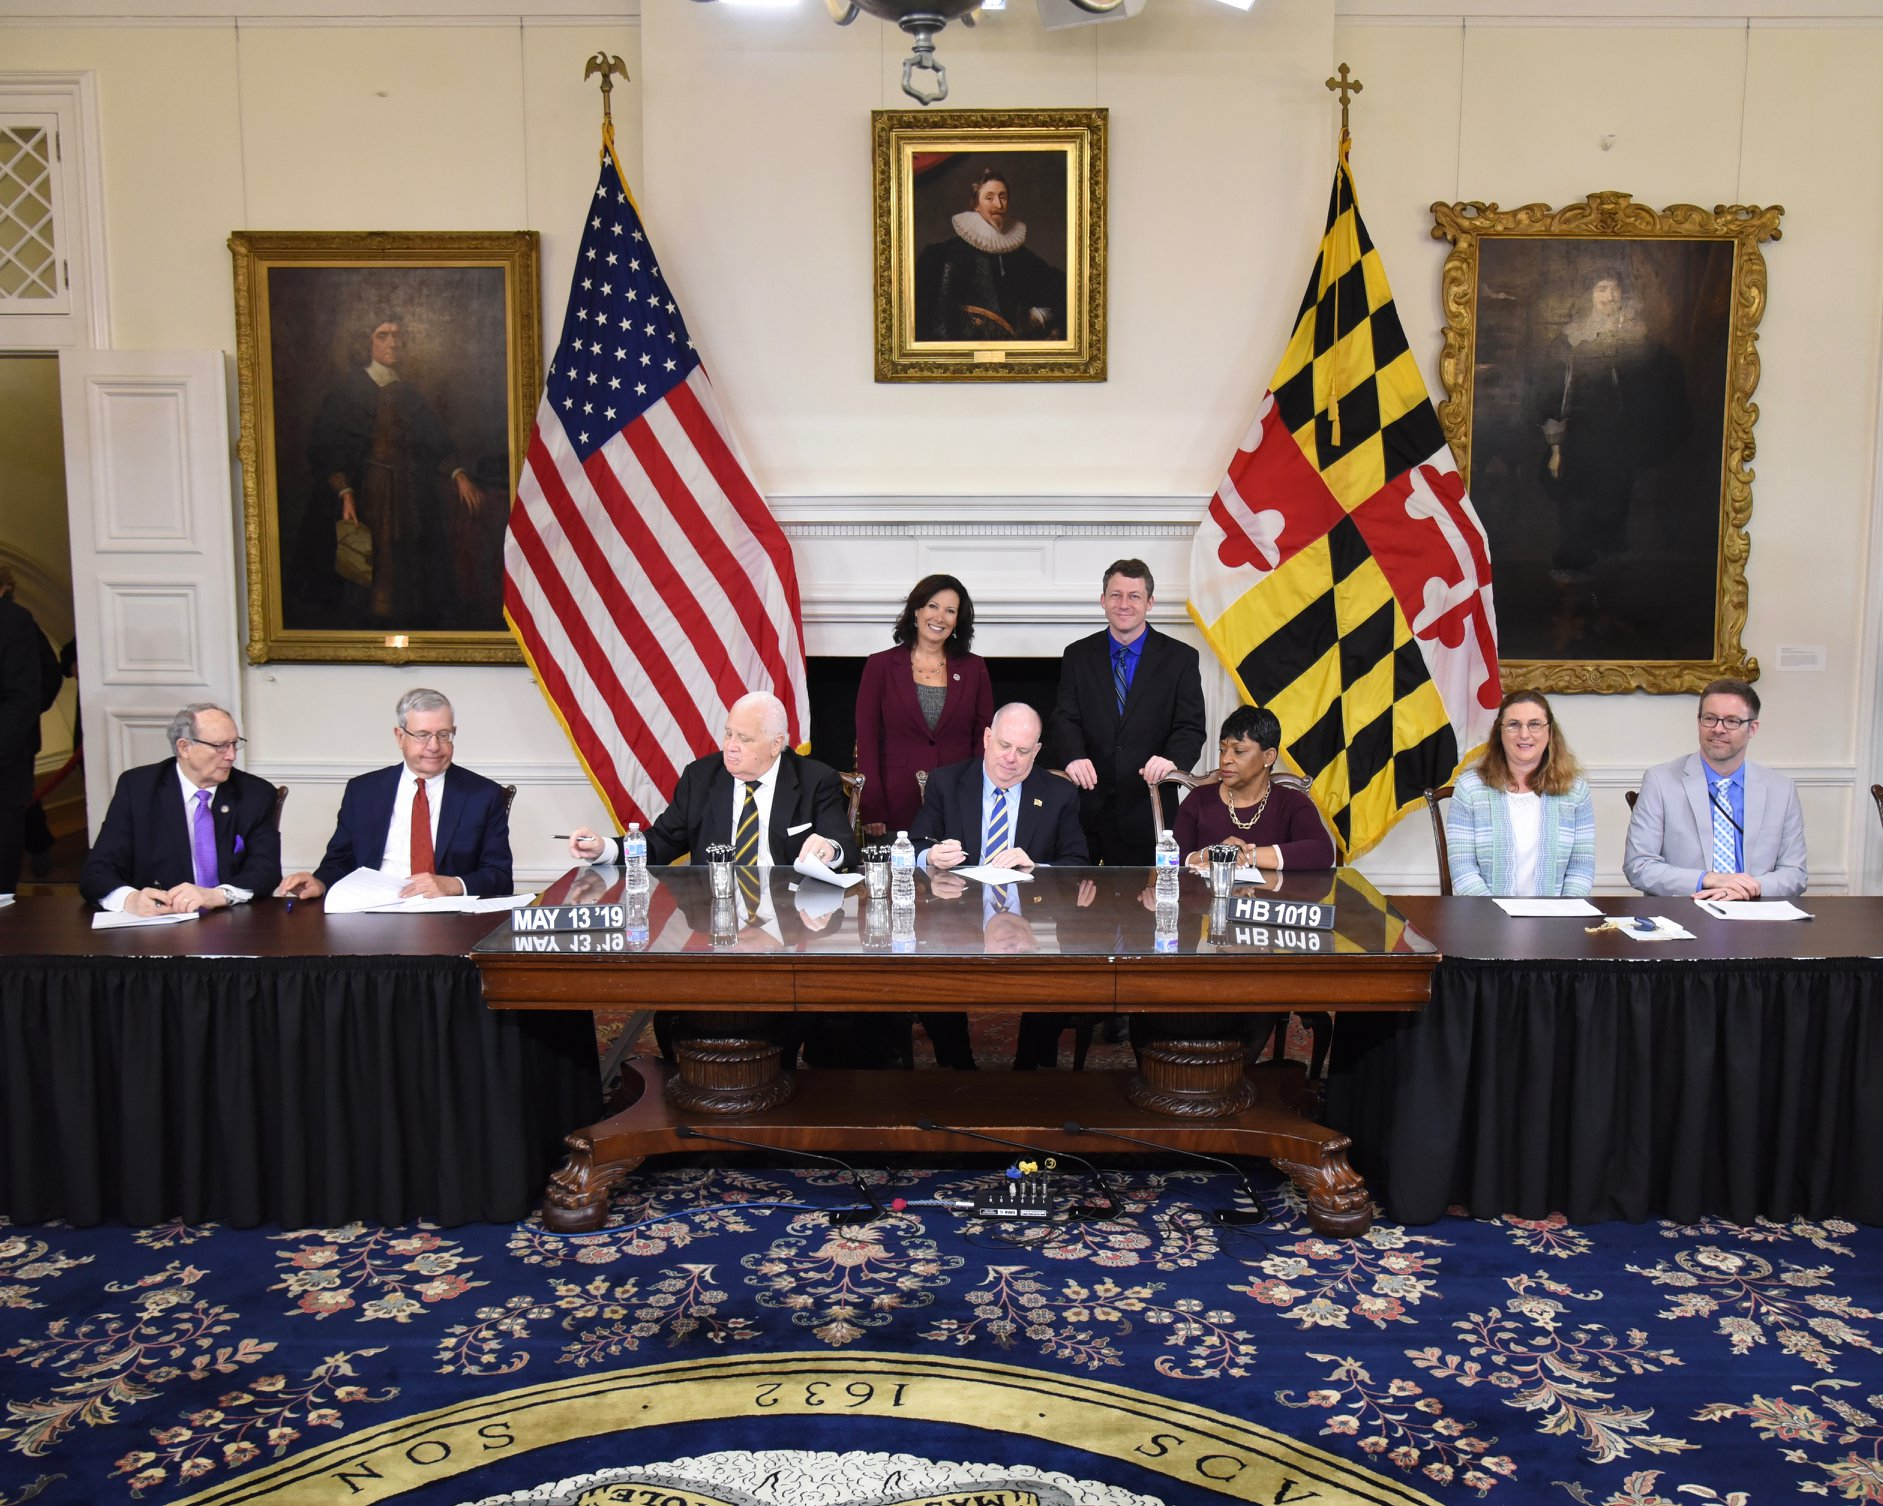 Bill Signings! - Governor Hogan signed HB611 ( to set timelines for Independent Educational Evaluations during the IEP process) and HB 1019 (to require a pause for appropriate piloting and standard-setting for new high stakes graduation exams before they can be used for graduation decisions) into law!